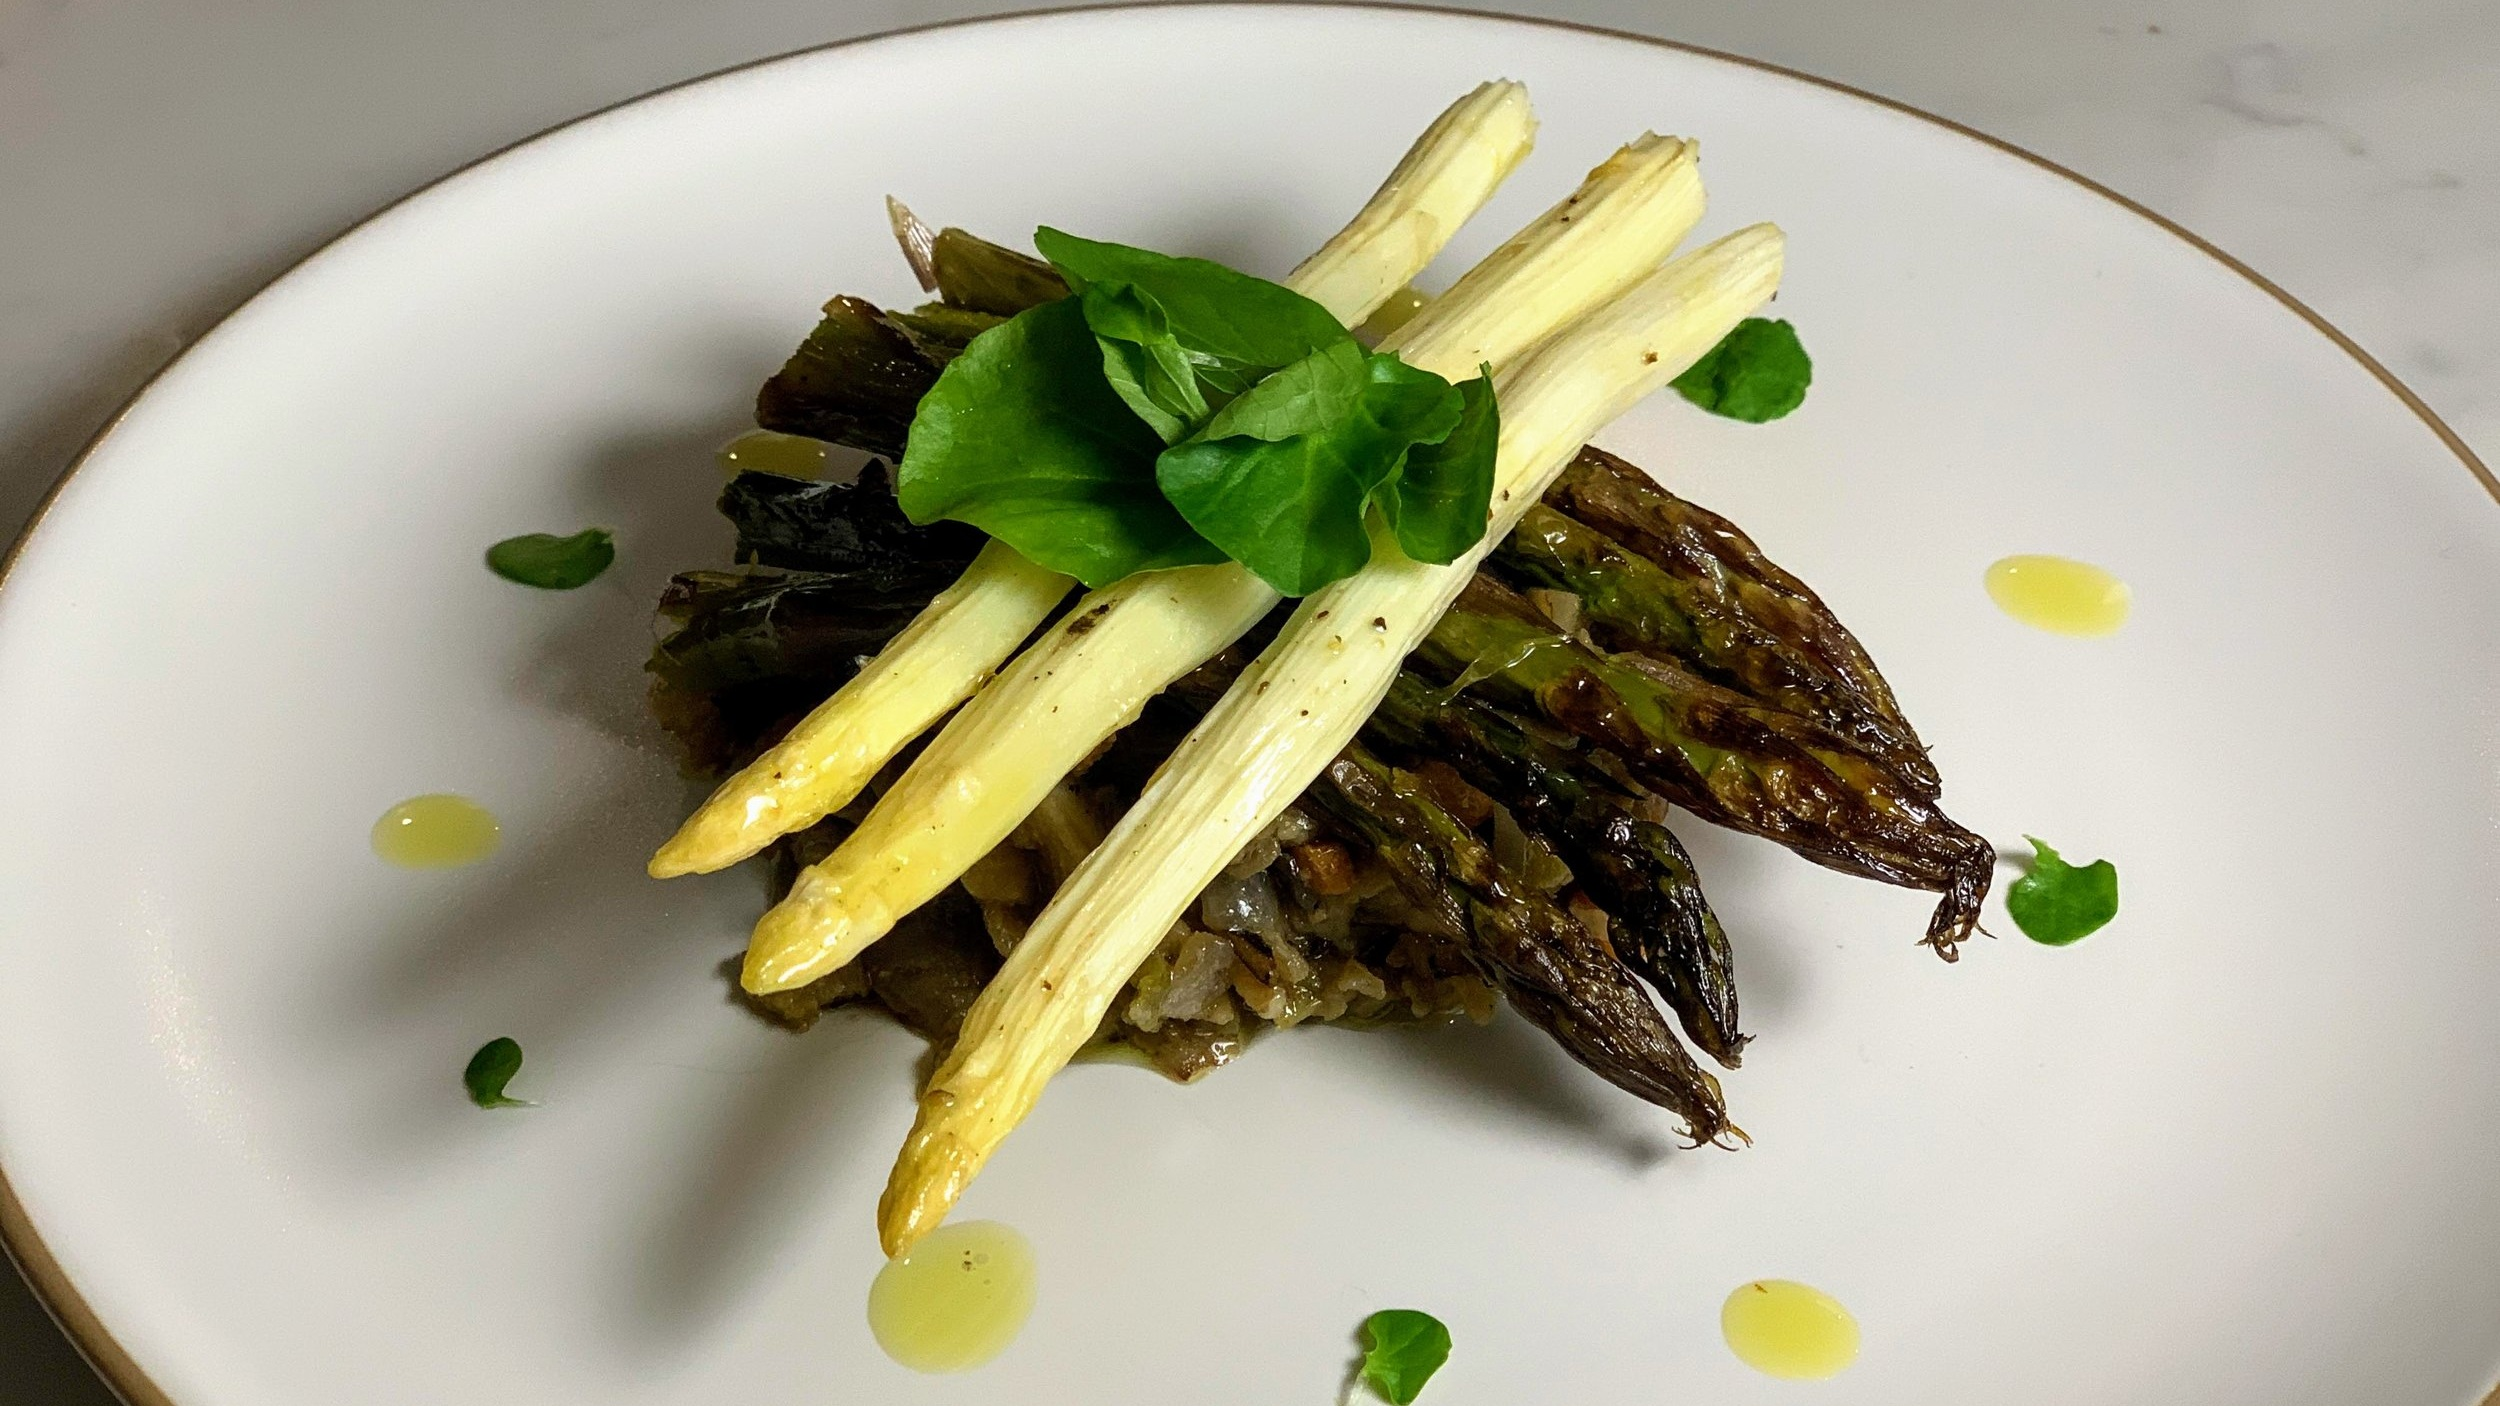 Spring asparagus and lush eggplants make this delicious salad a perfect option for an entree